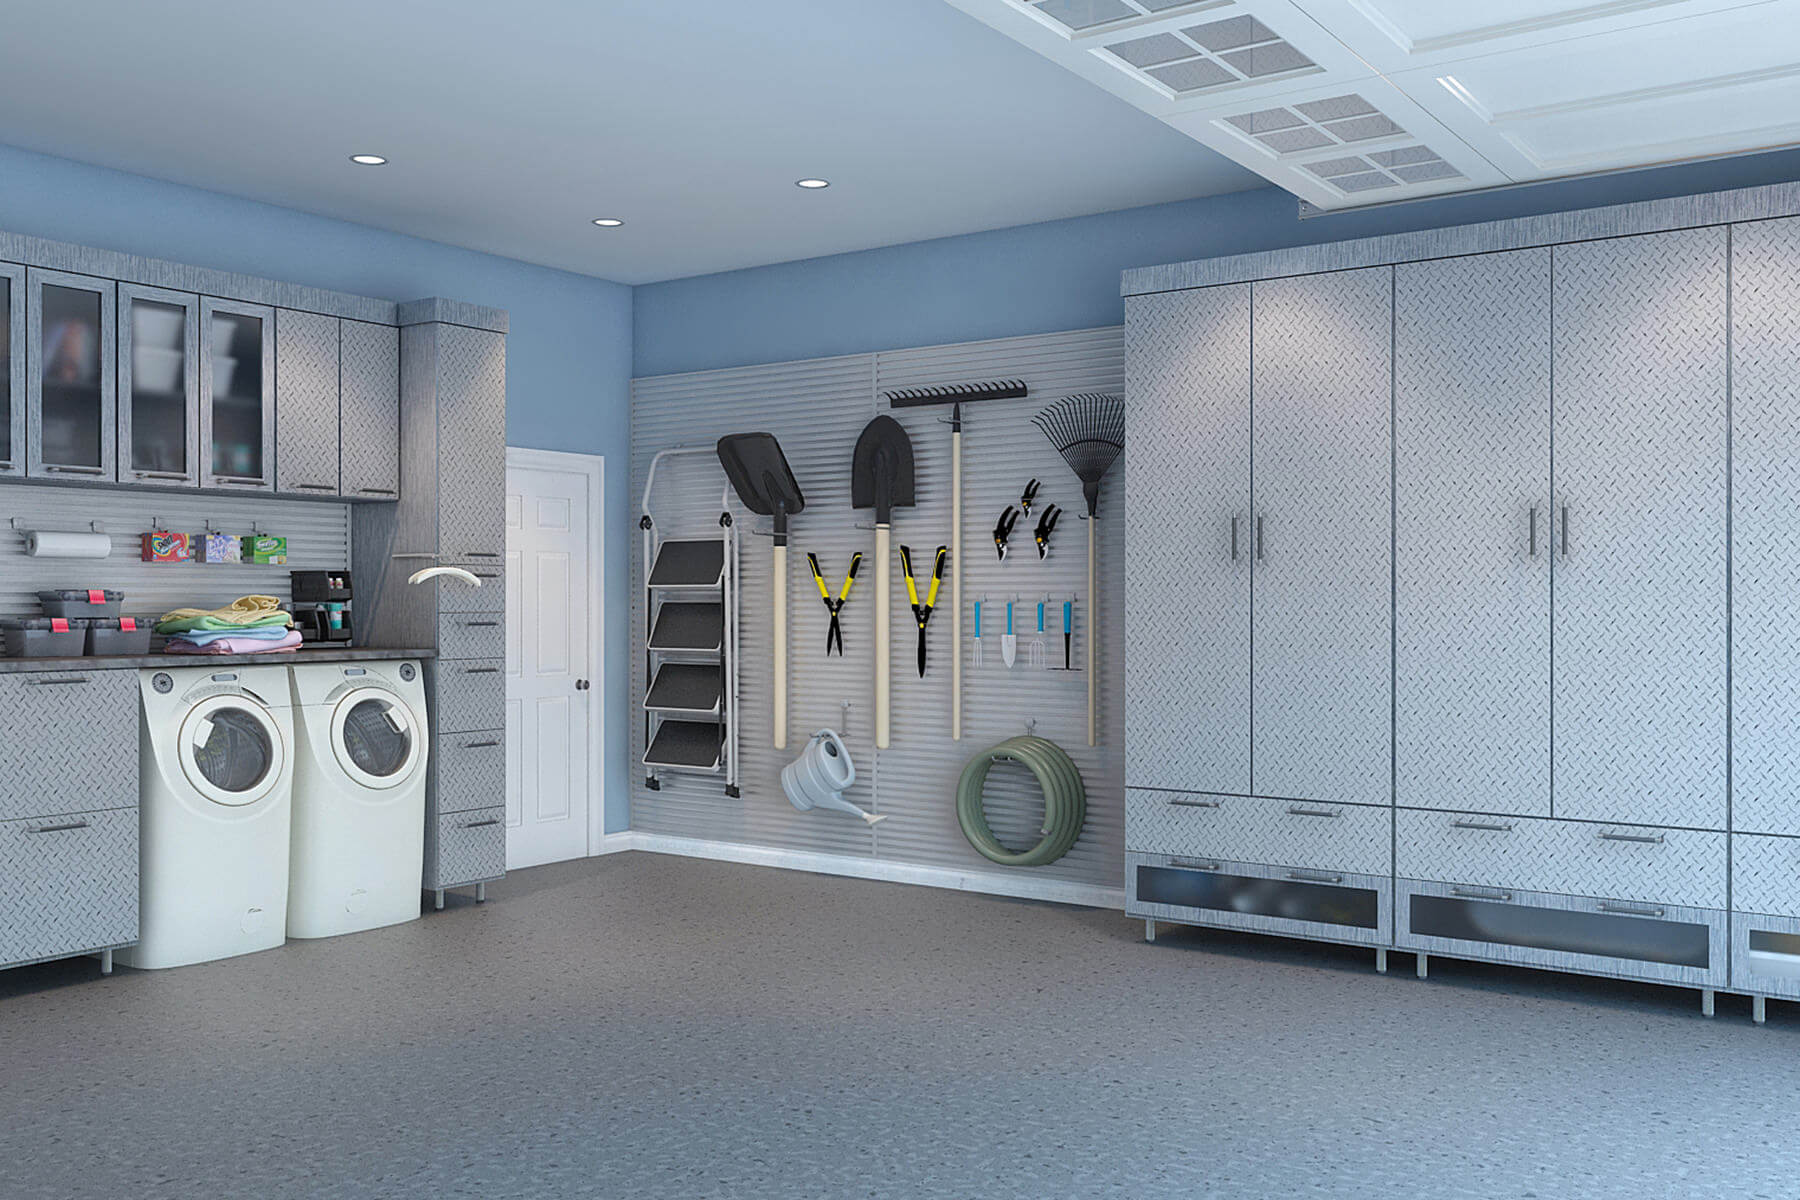 29 garage storage ideas plus 3 garage man caves the garage s melamine cabinets and uppers with lucite inserts easily steal your attention everything fits